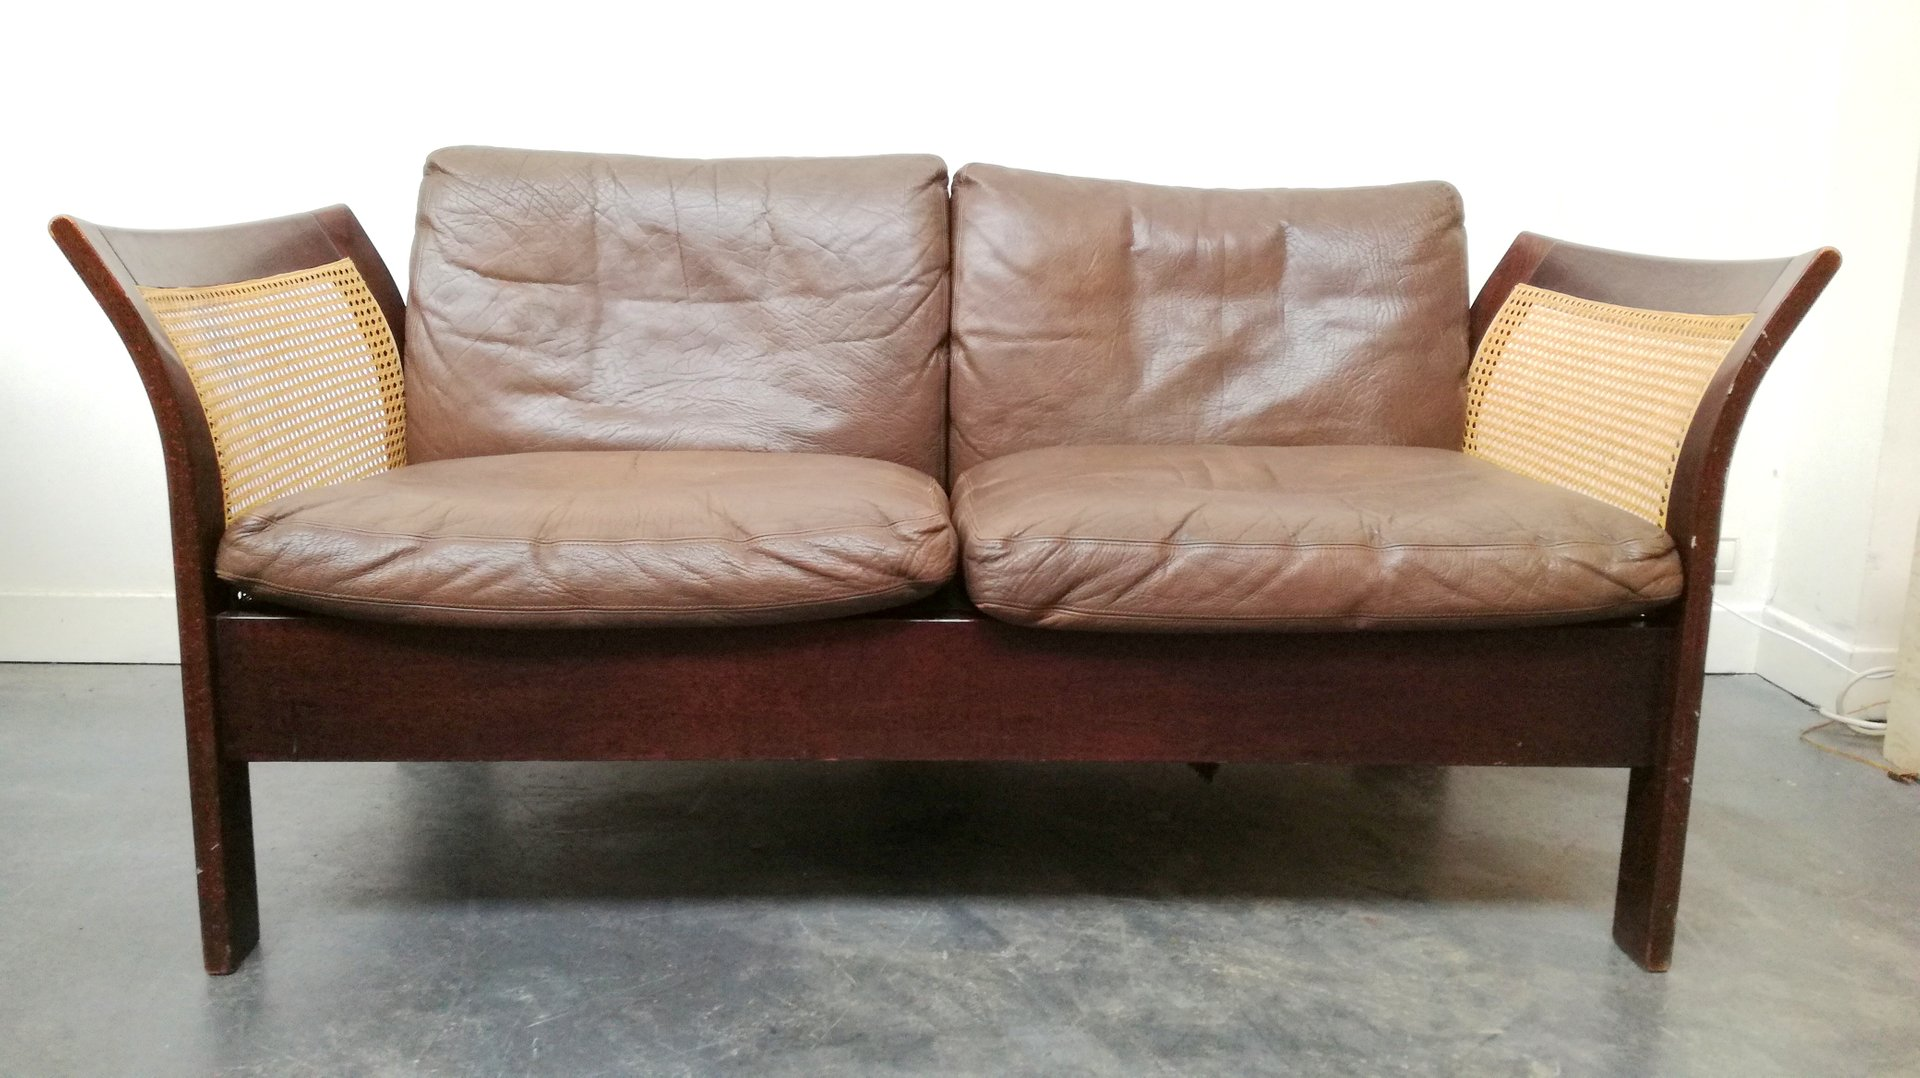 2 Seater Sofa from Vejen Polsterm¸belfabrik 1960s for sale at Pamono